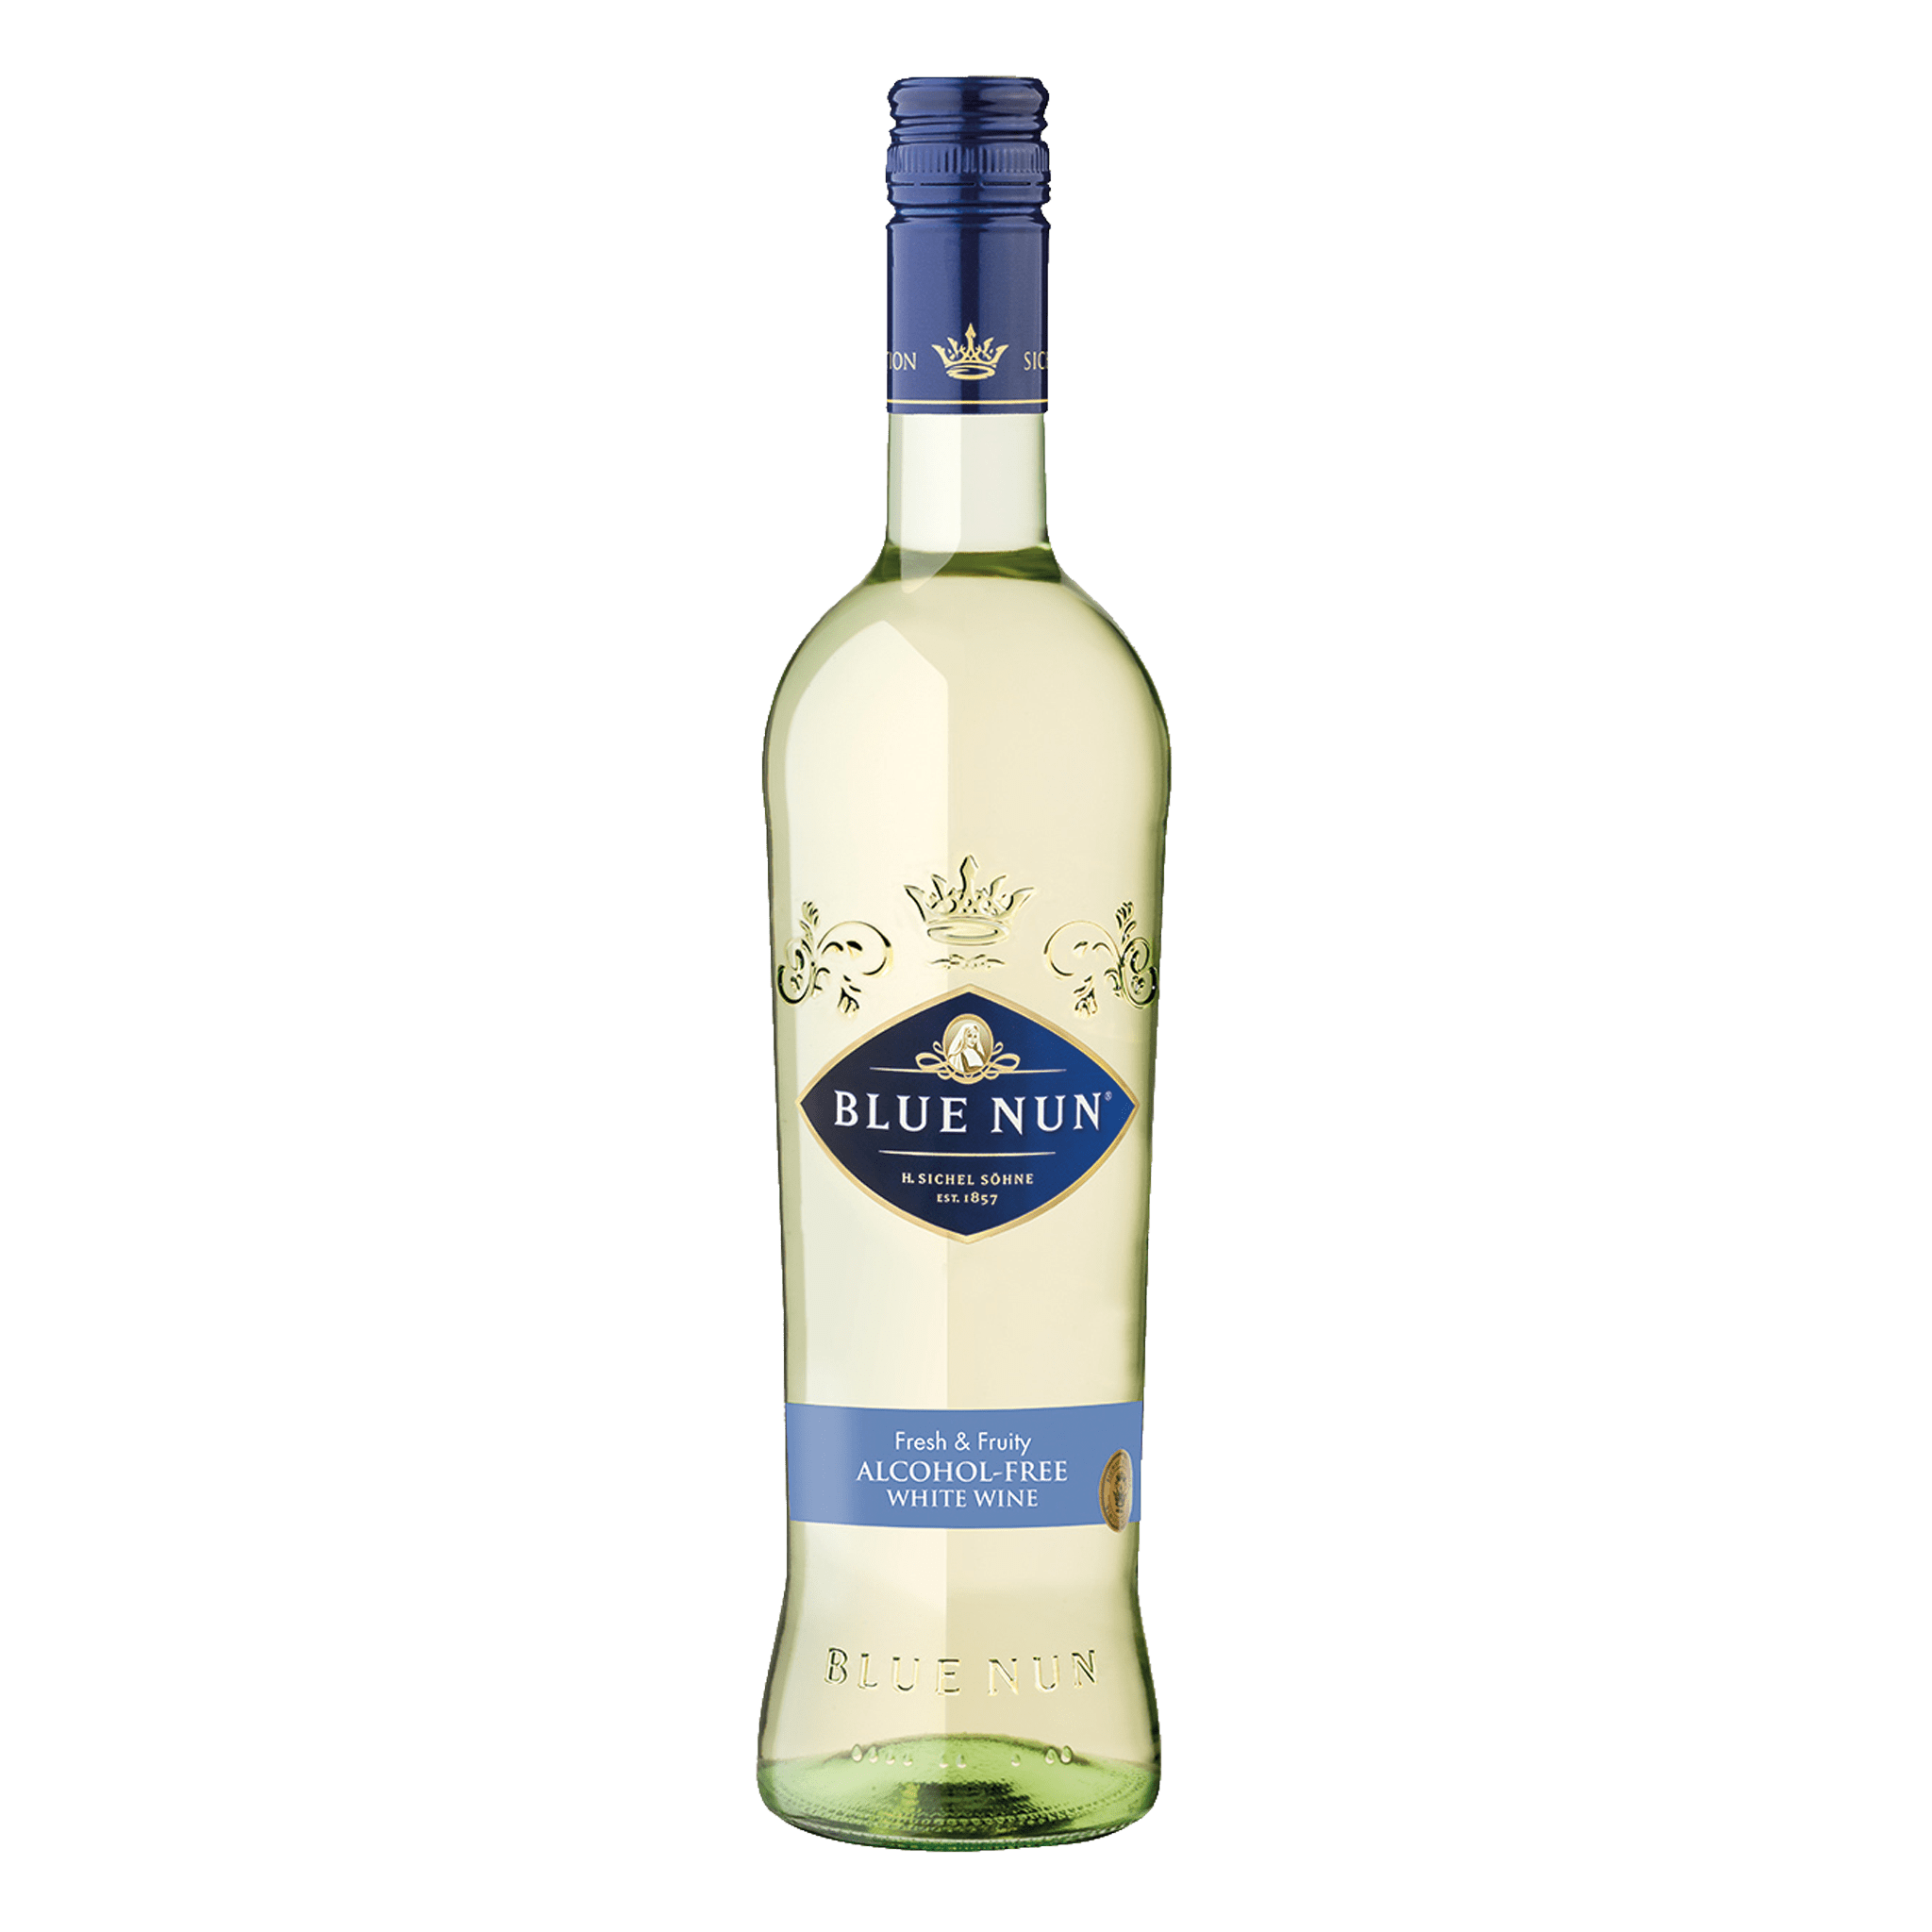 Blue Nun Alcohol Free White Wine - Kent Street Cellars